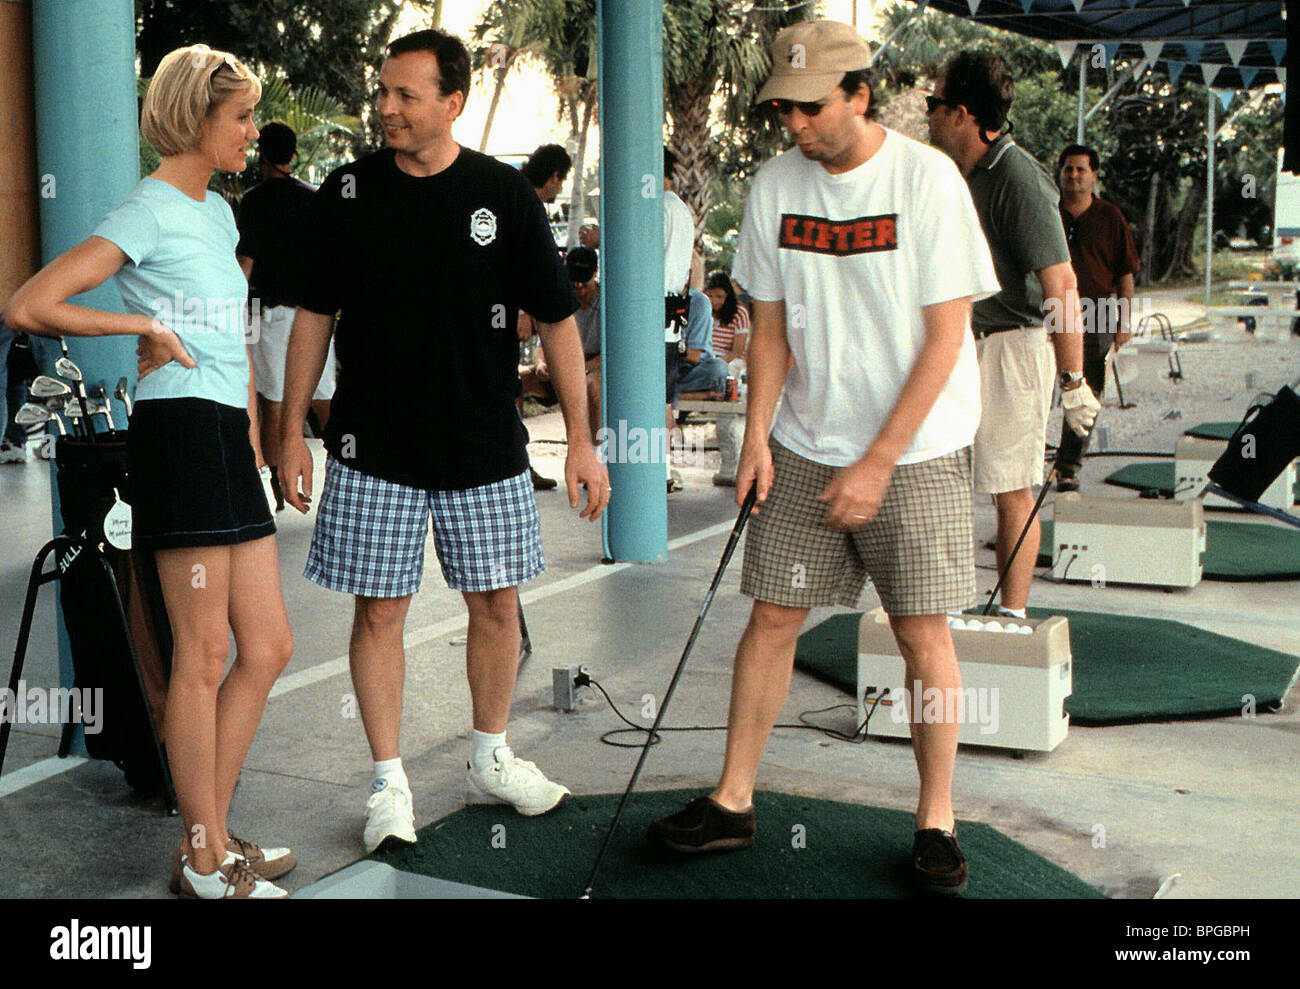 CAMERON DIAZ BOBBY FARRELLY PETER FARRELLY THERE'S SOMETHING ABOUT MARY (1998) - Stock Image